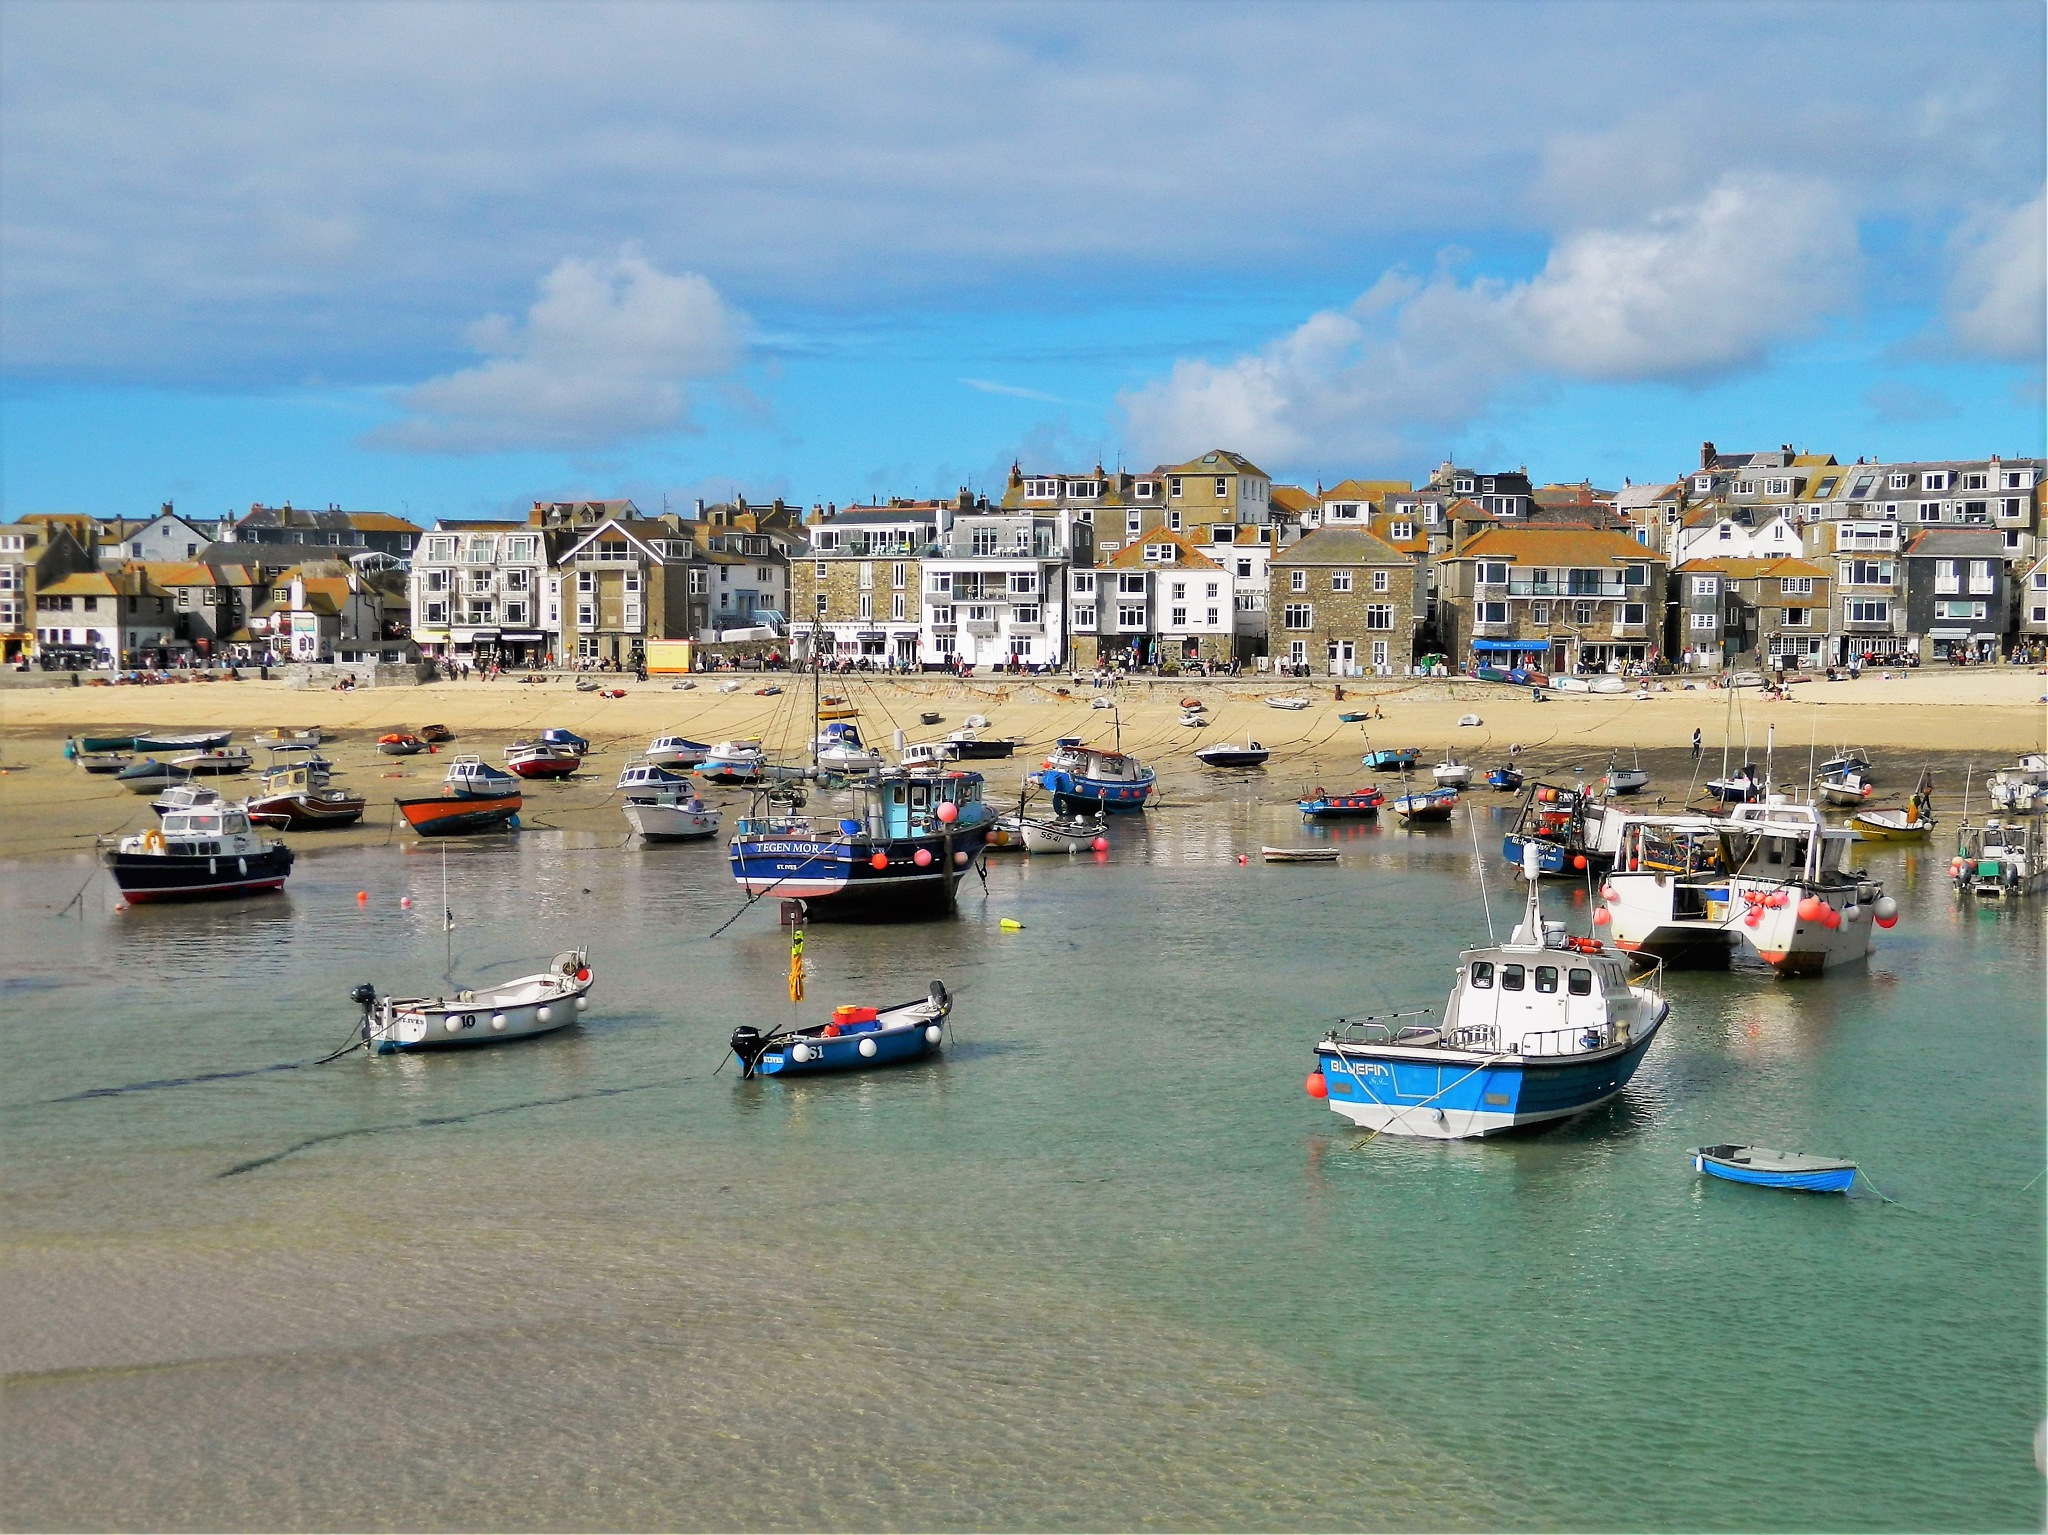 St. Ives #2 by AndyWaters